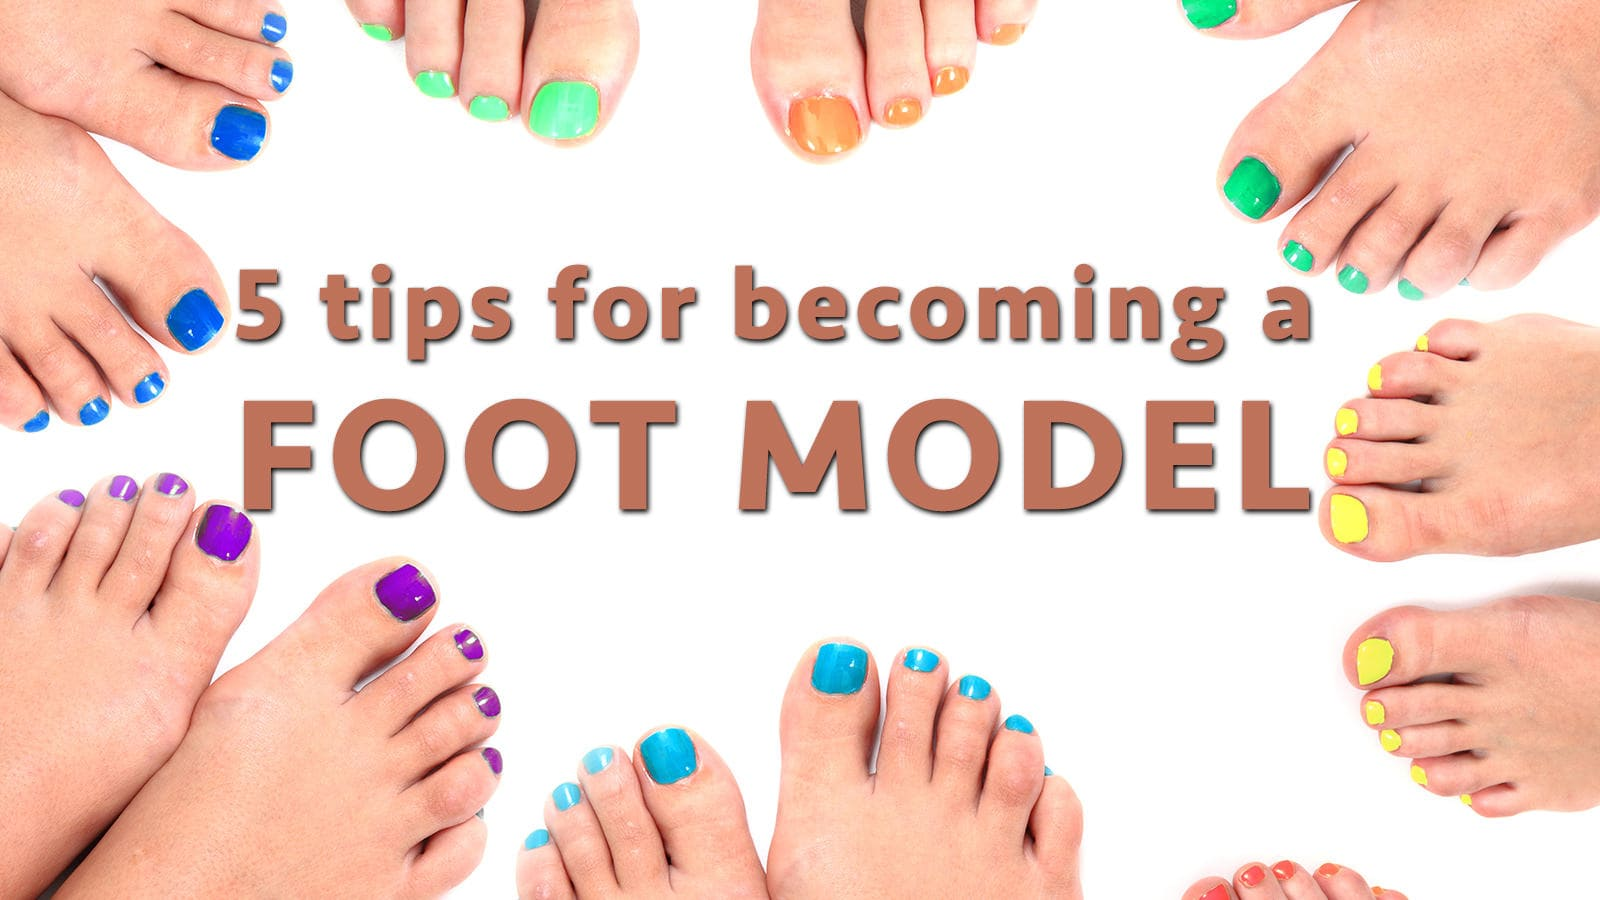 Photo of Five tips for becoming a Foot Model